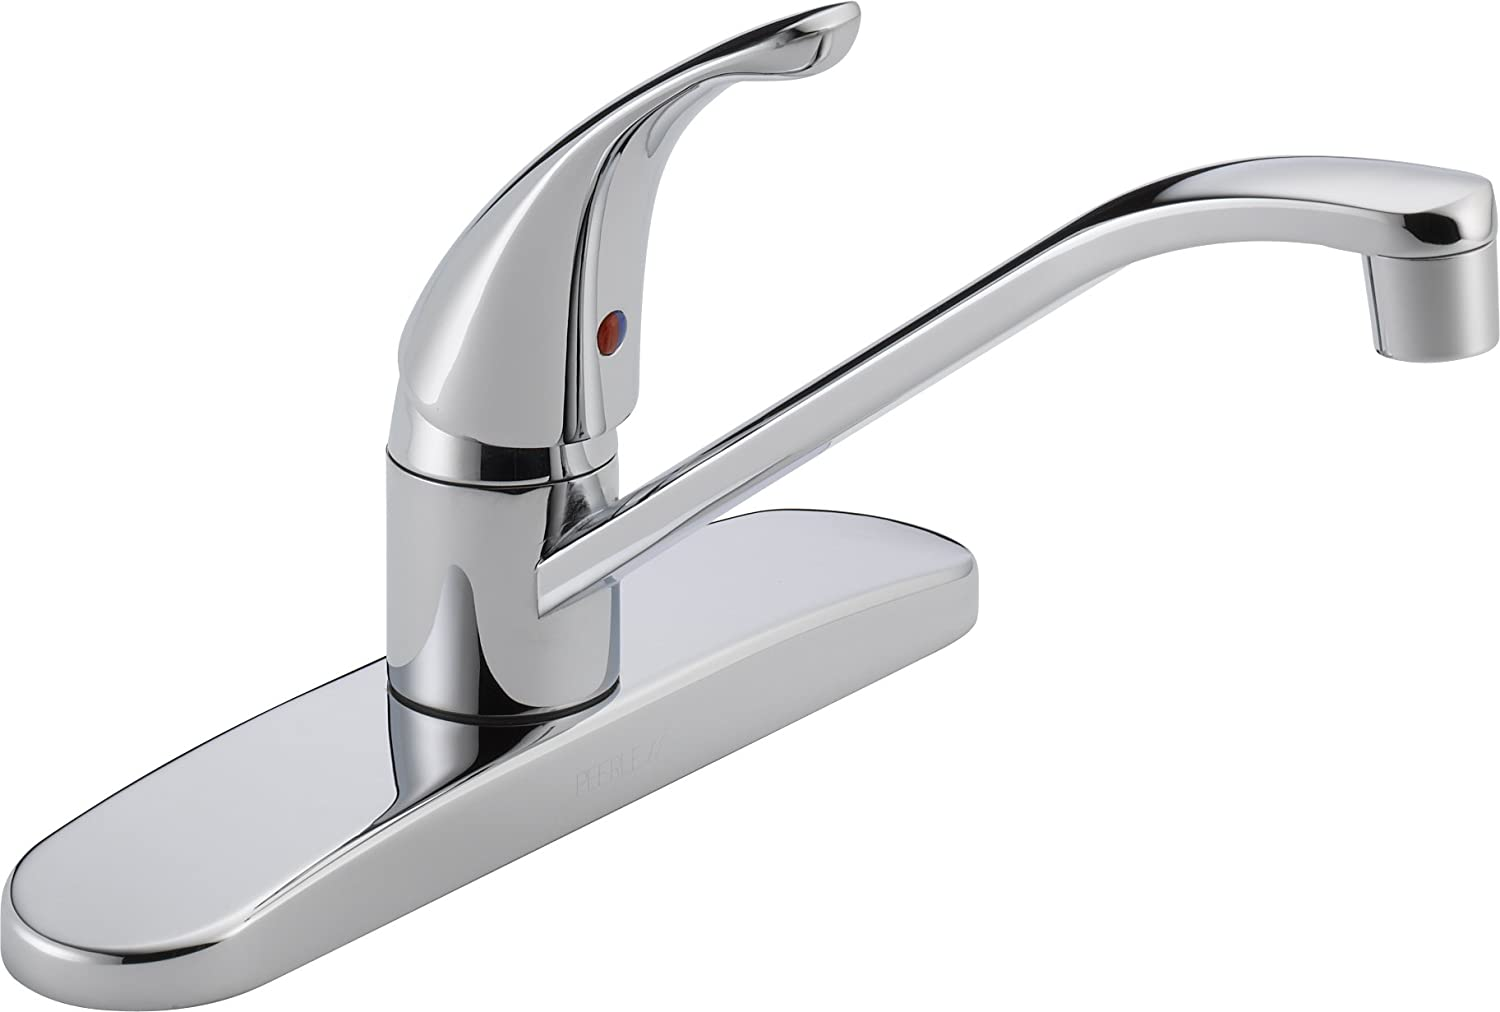 Peerless Single Handle Kitchen Sink Faucet Chrome P110lf Touch